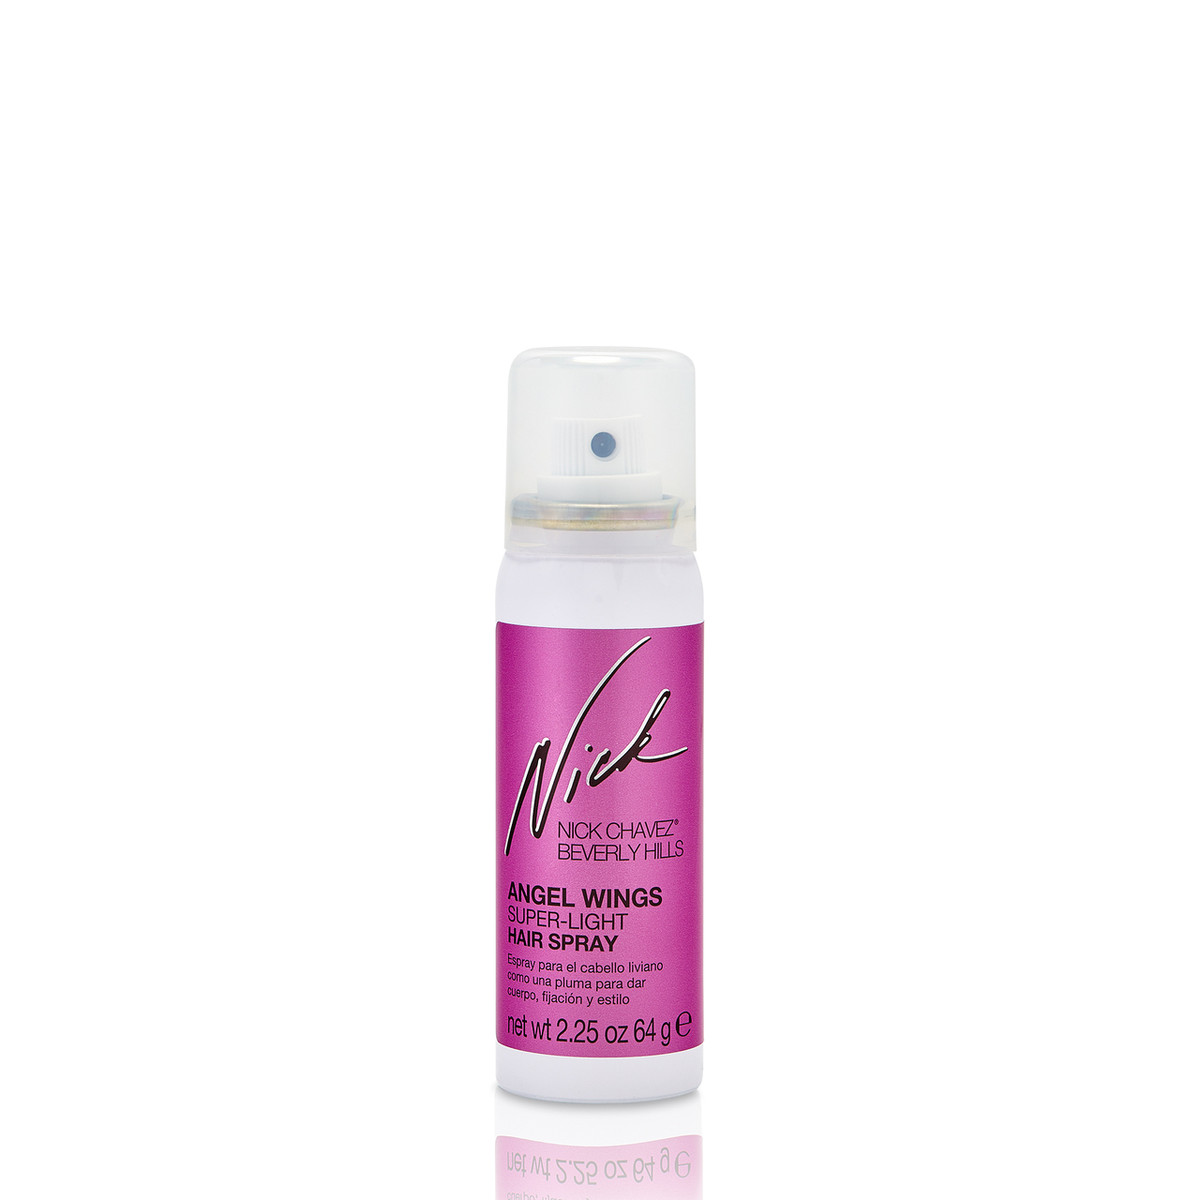 Angel Wings Super-Light Hair Spray 2oz